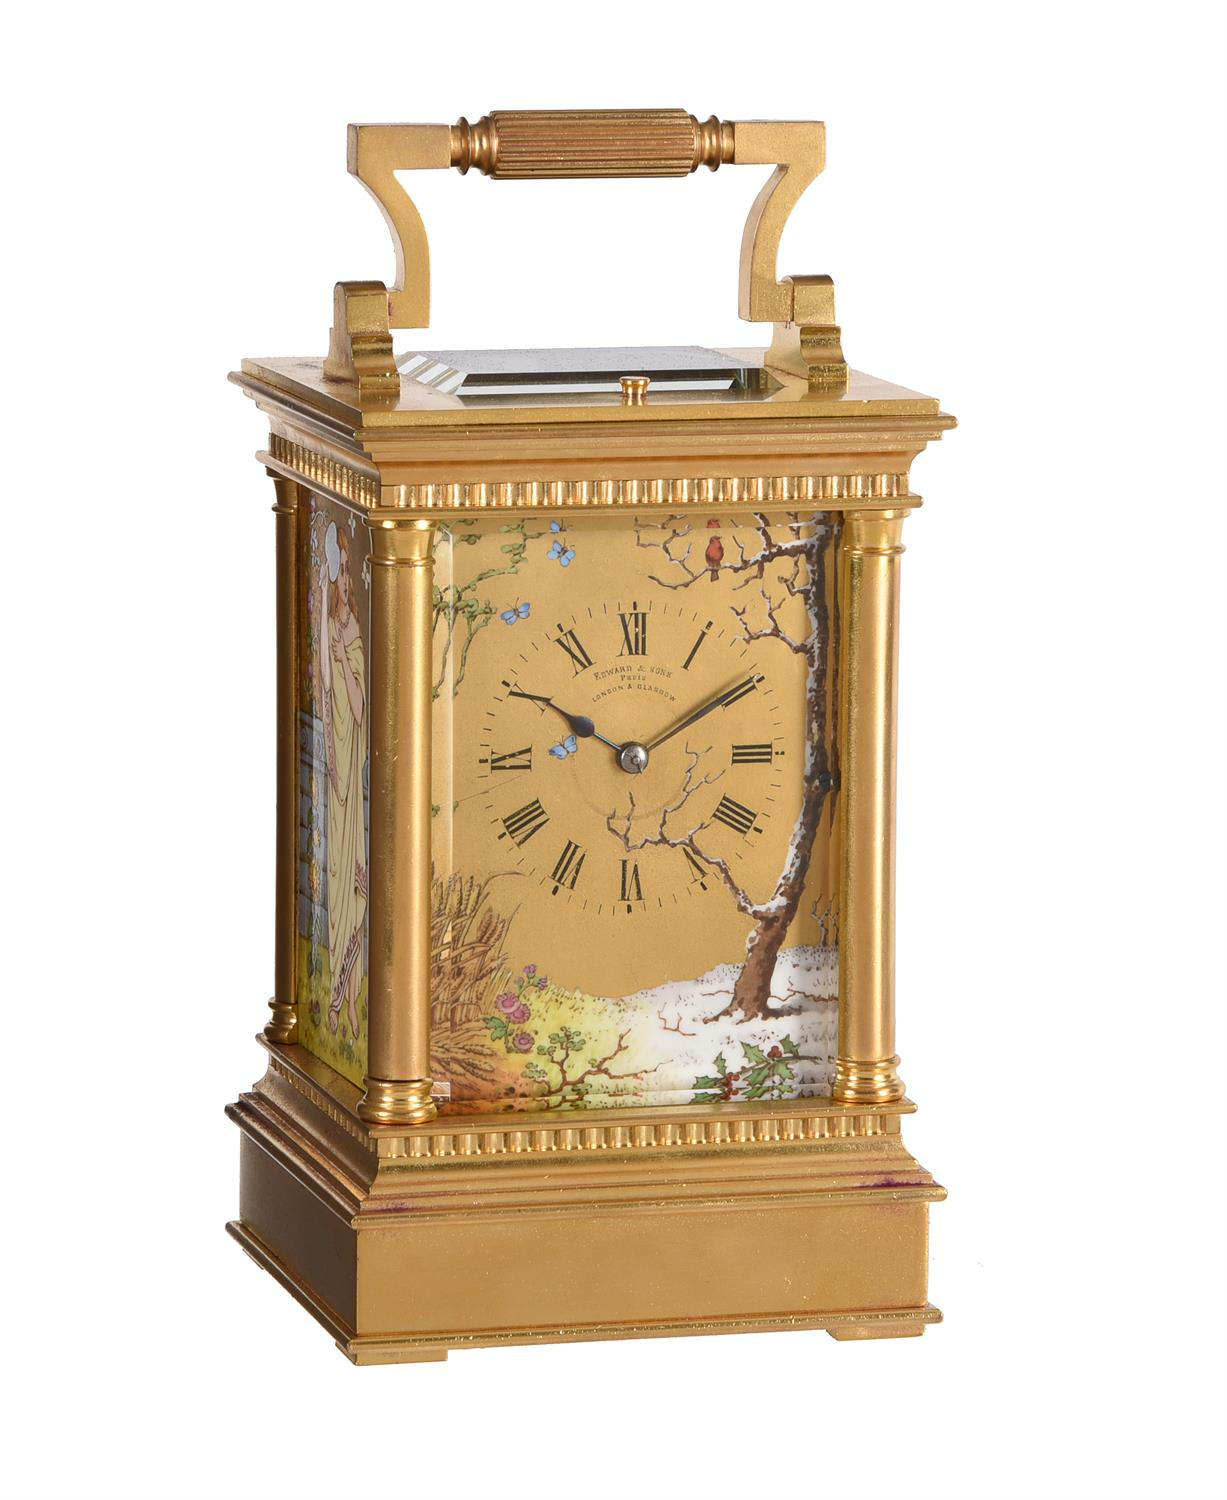 A fine French gilt brass carriage clock with painted porcelain panels and push-button repeat